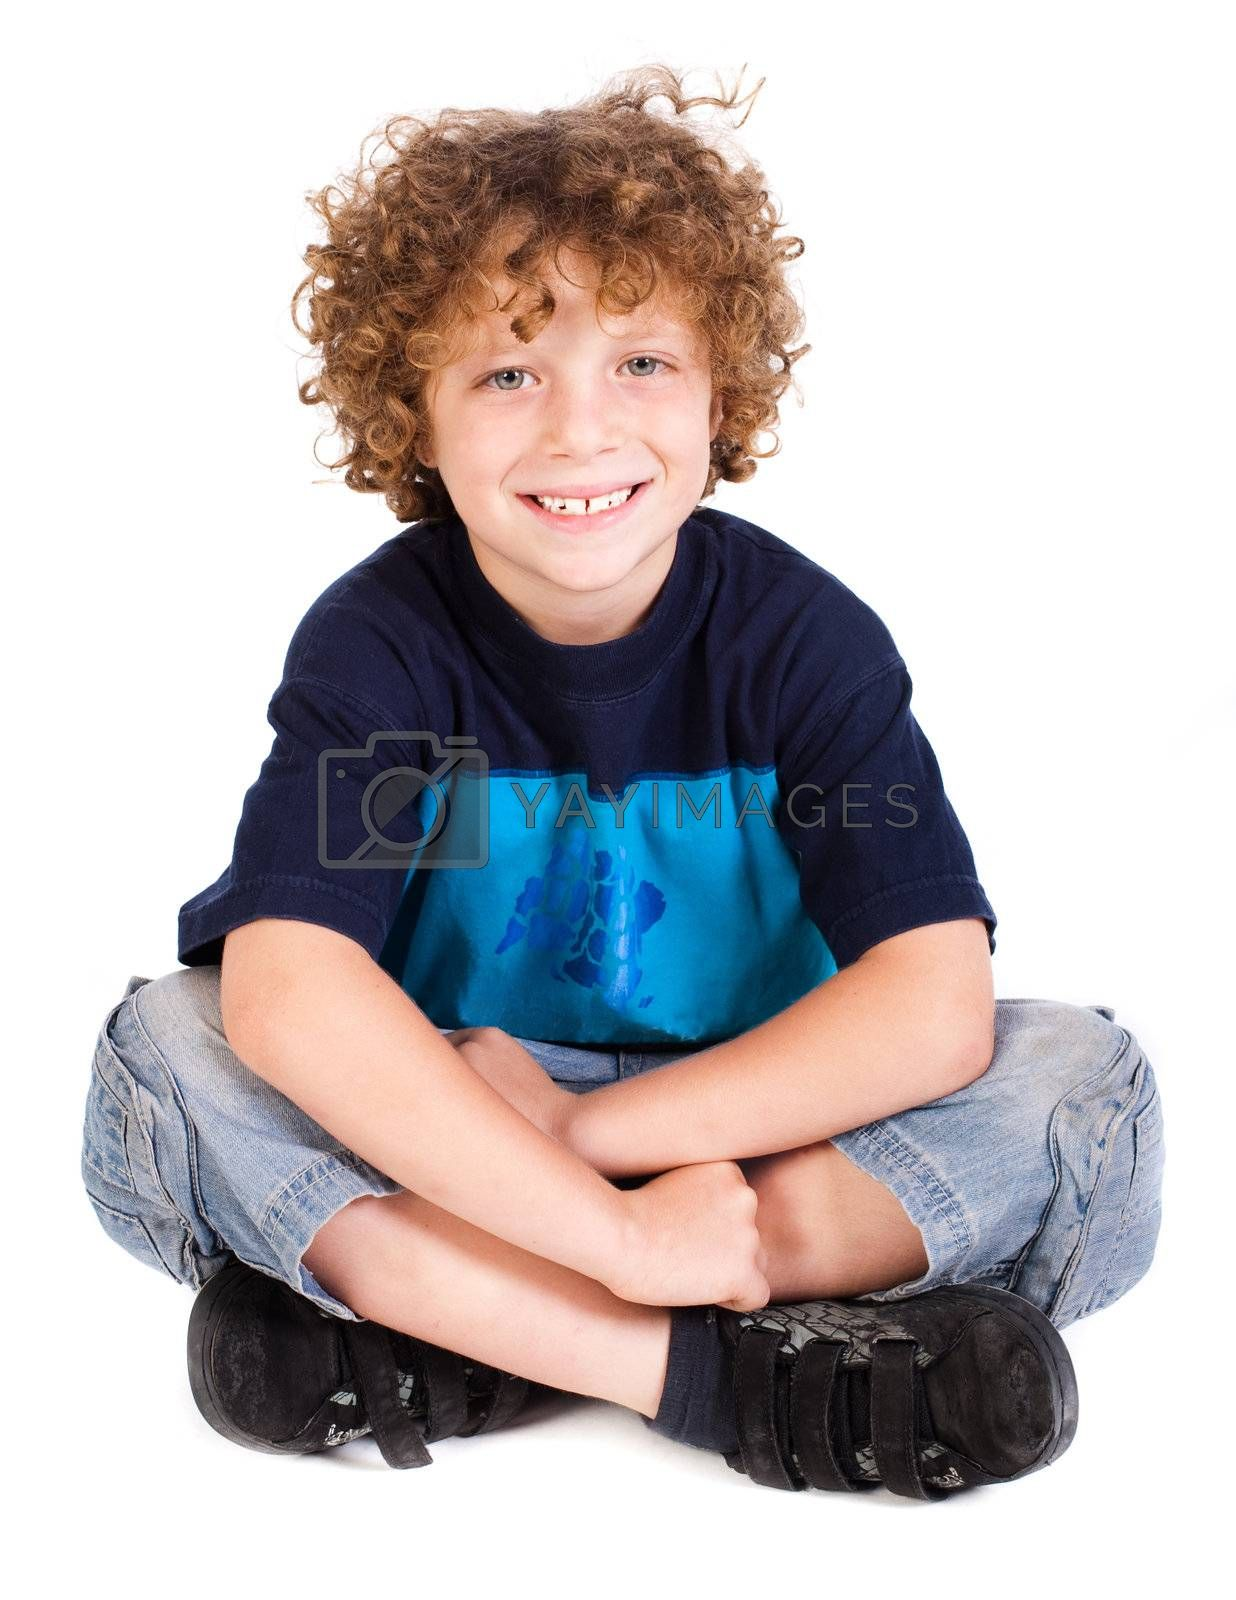 Cheerful kid relaxing on floor isoalted agianst on white.